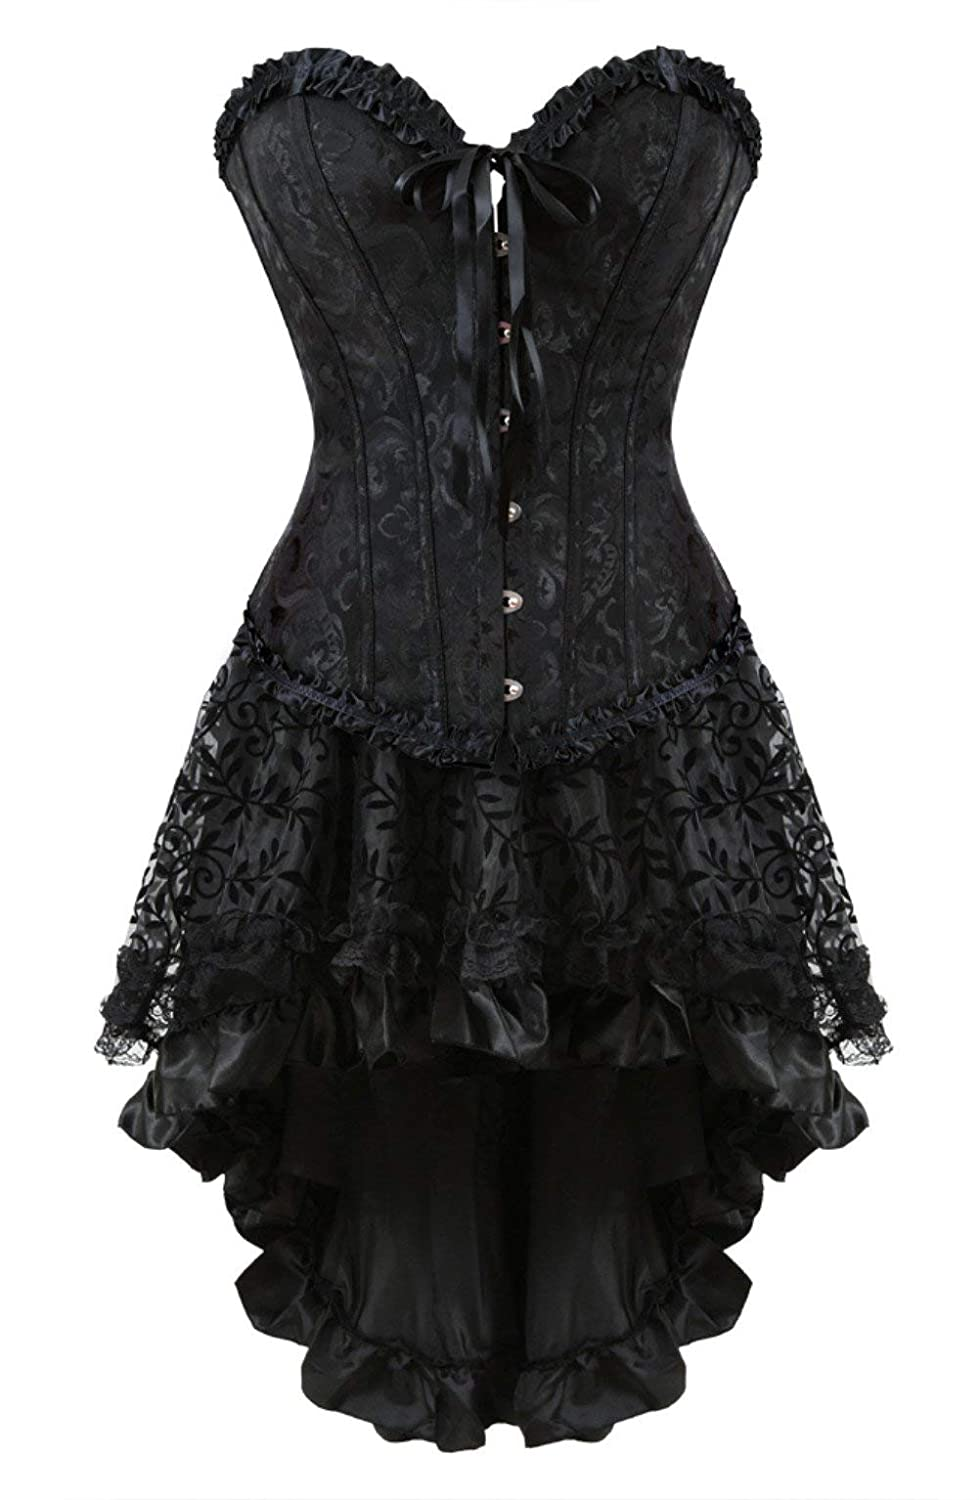 819 Black Grebrafan Steampunk Corset Skirt with Zipper,Multi Layered High Low Outfits